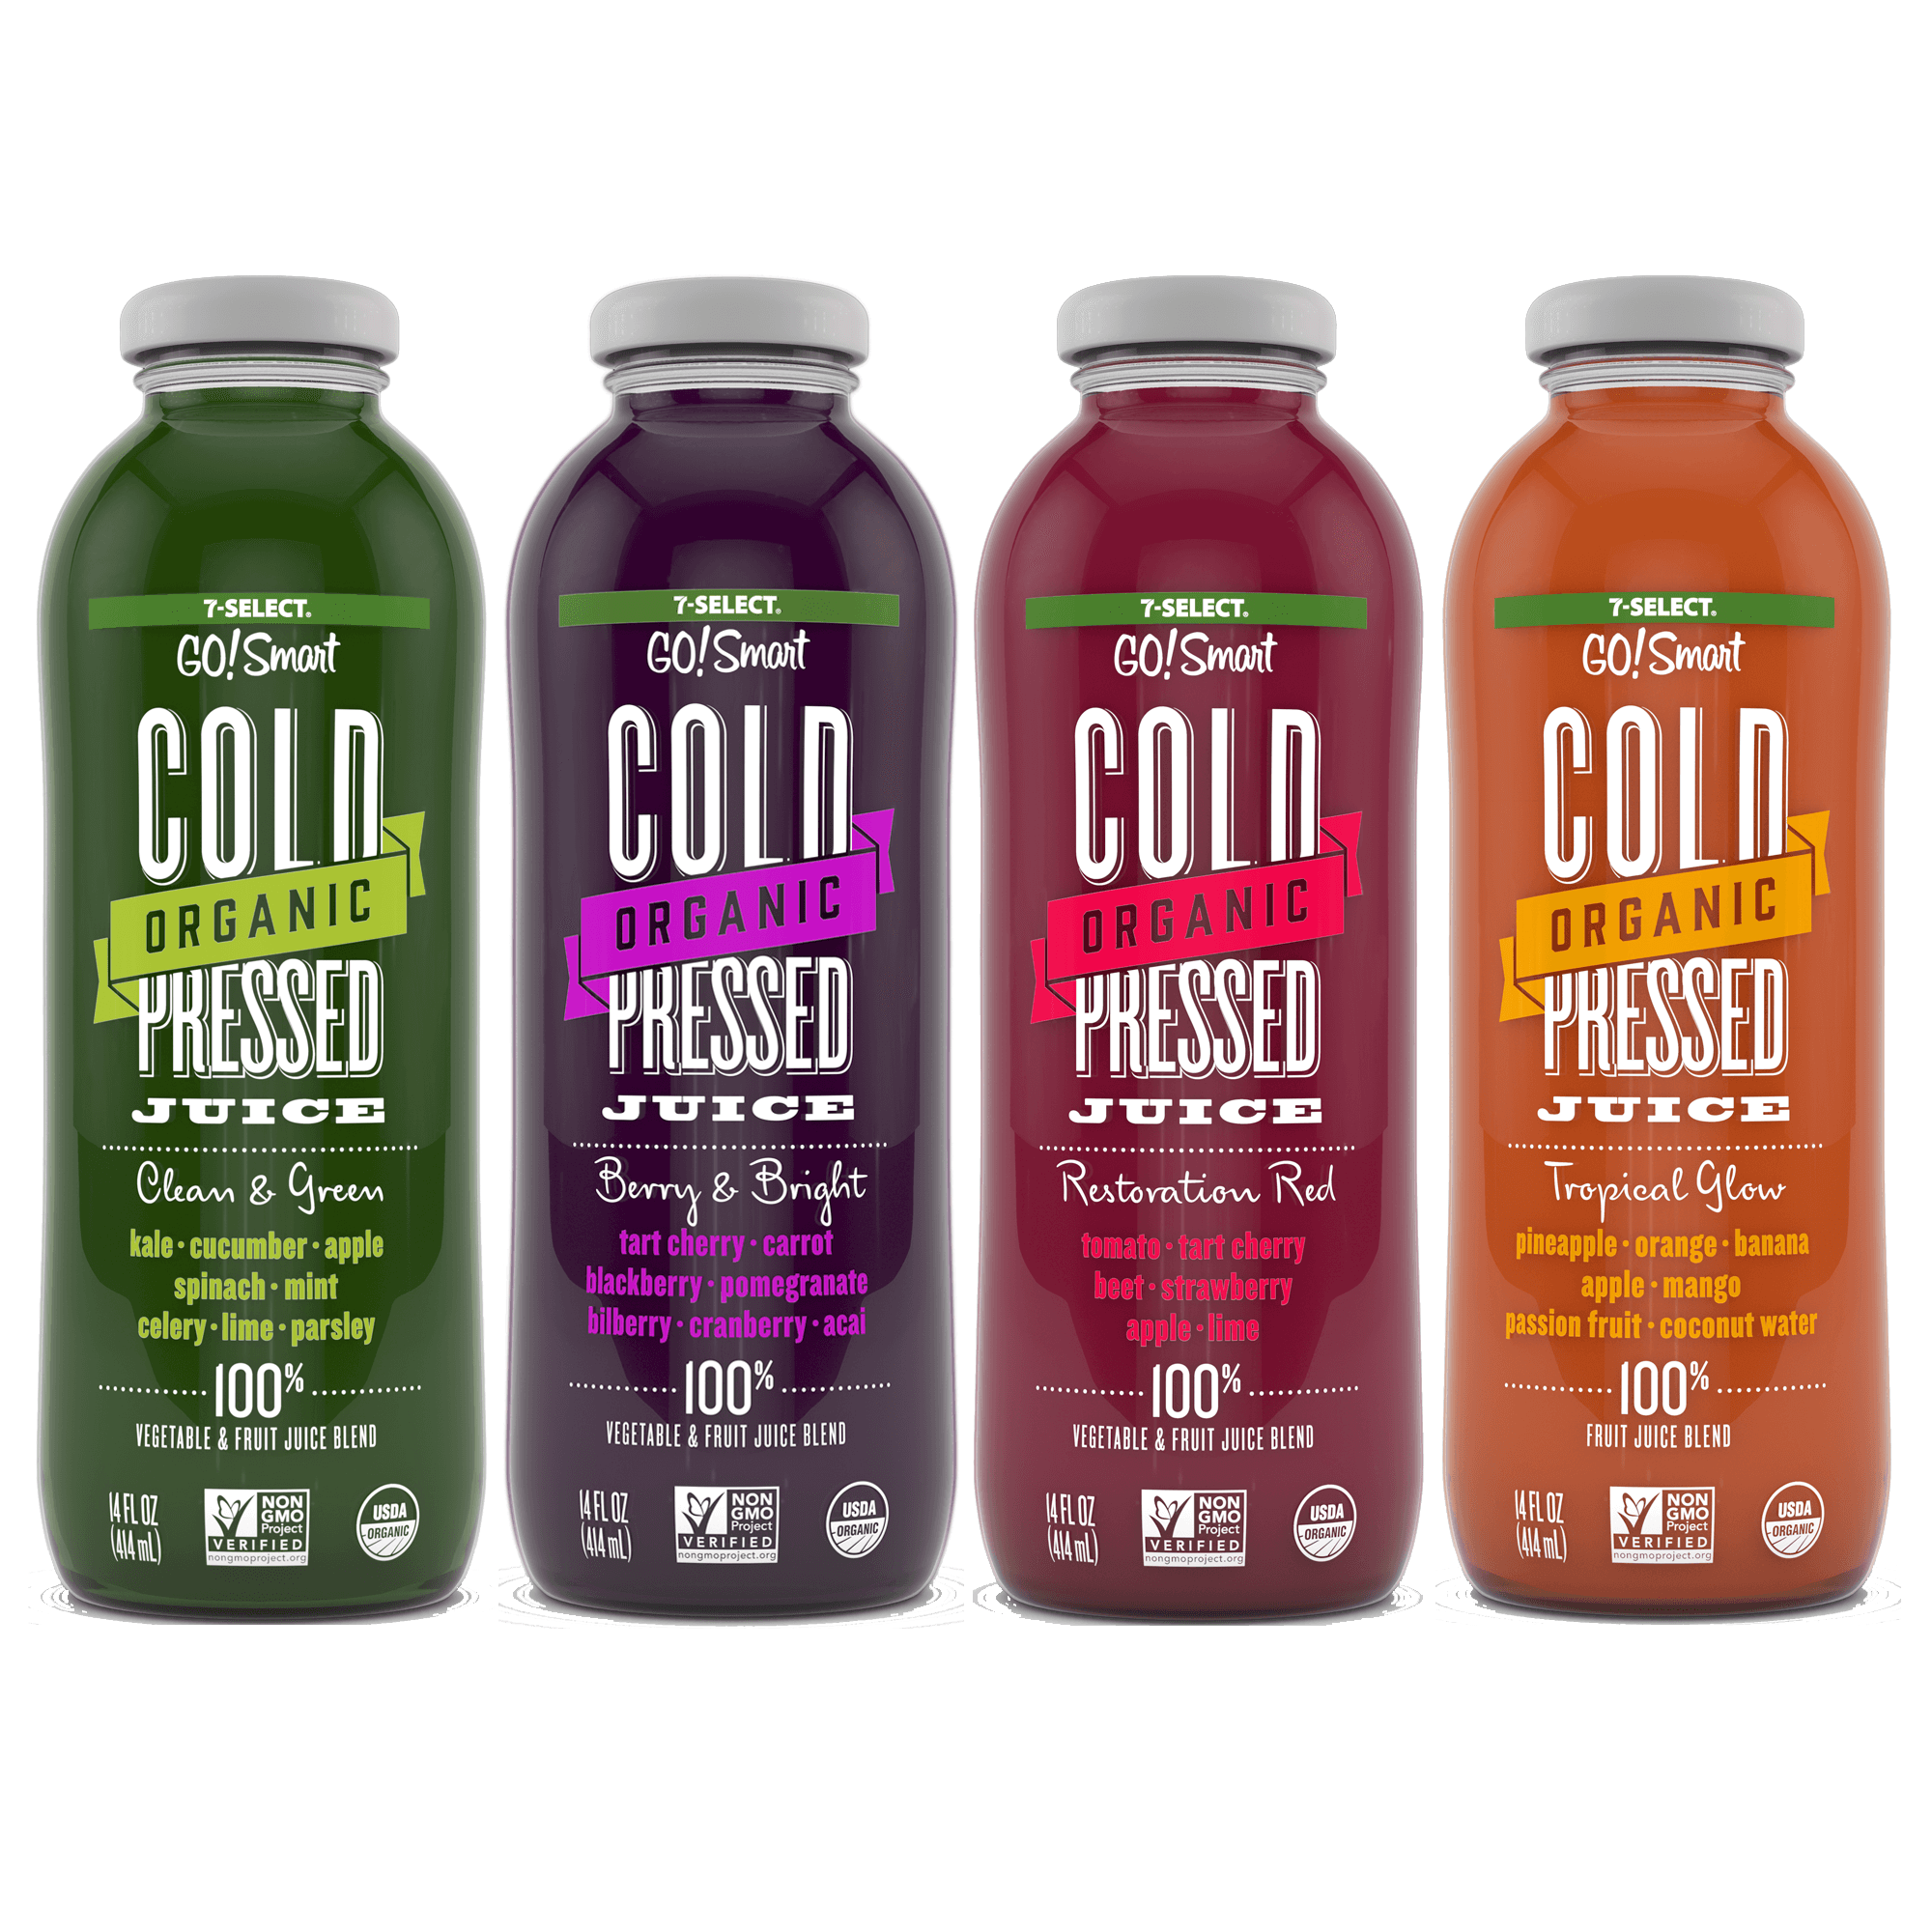 7-Select_Cold_Pressed_Juice.png